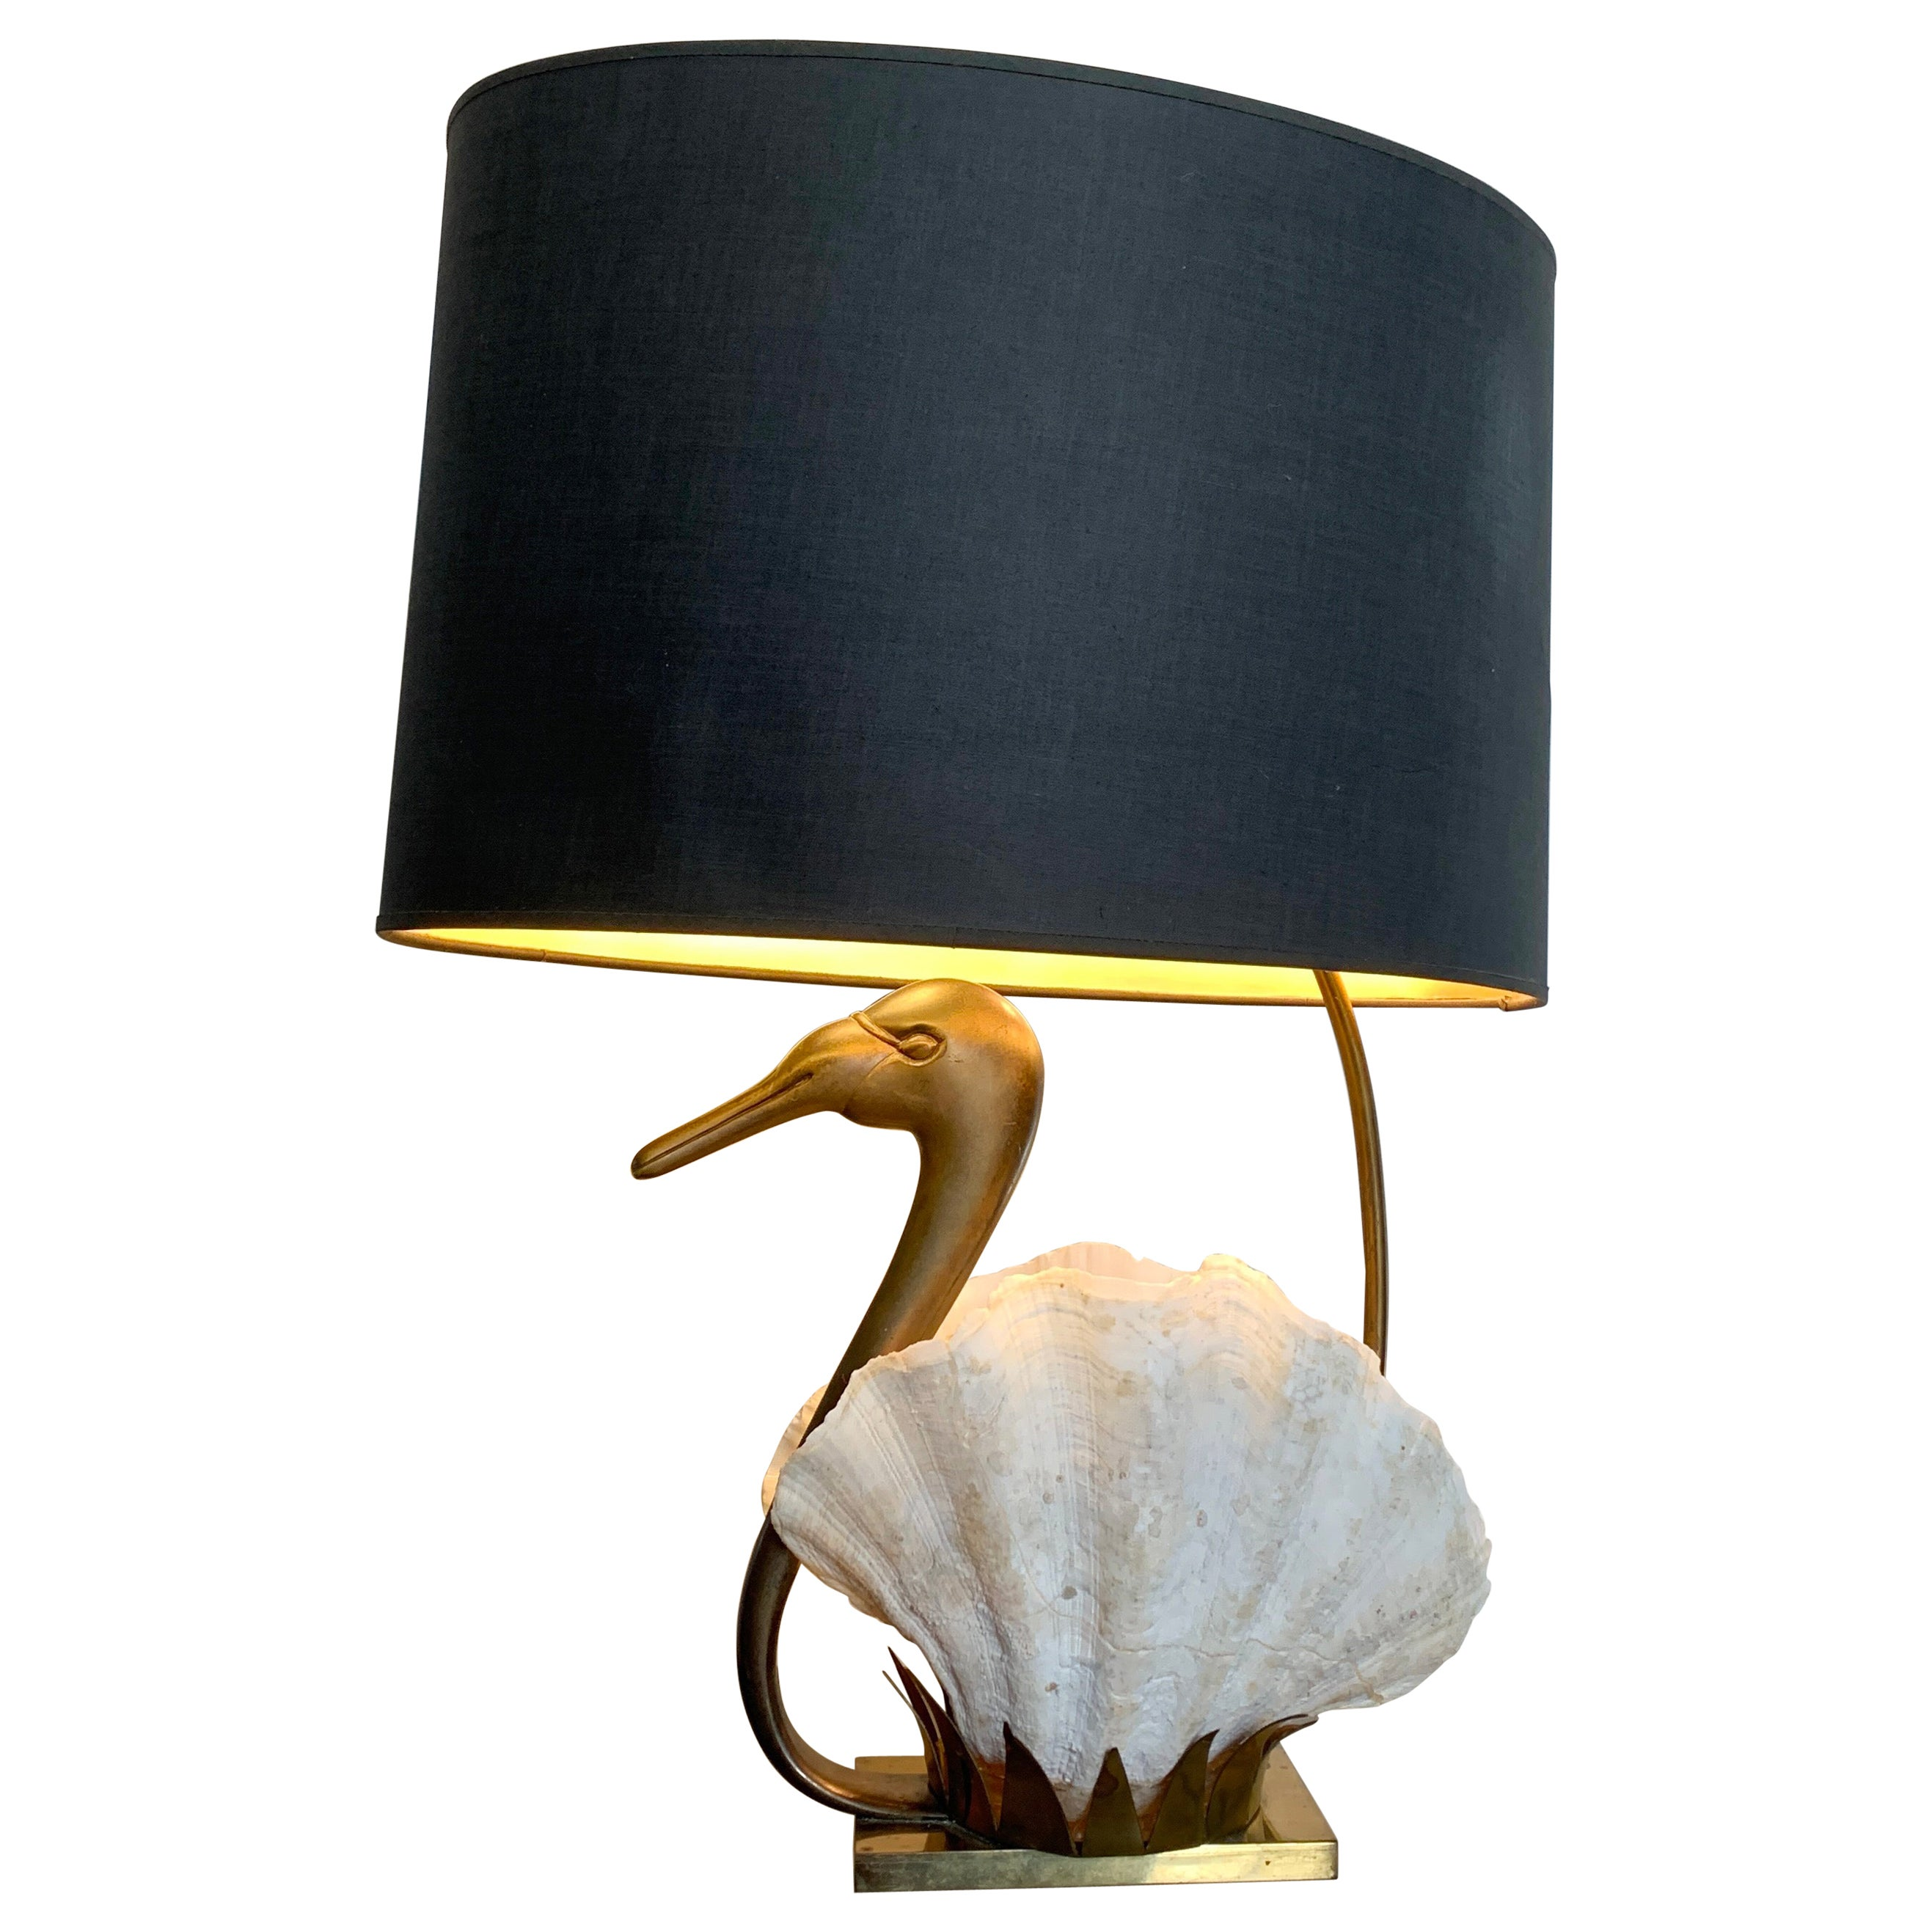 Exceptional, Willy Daro Swan Table Lamp, 1970s